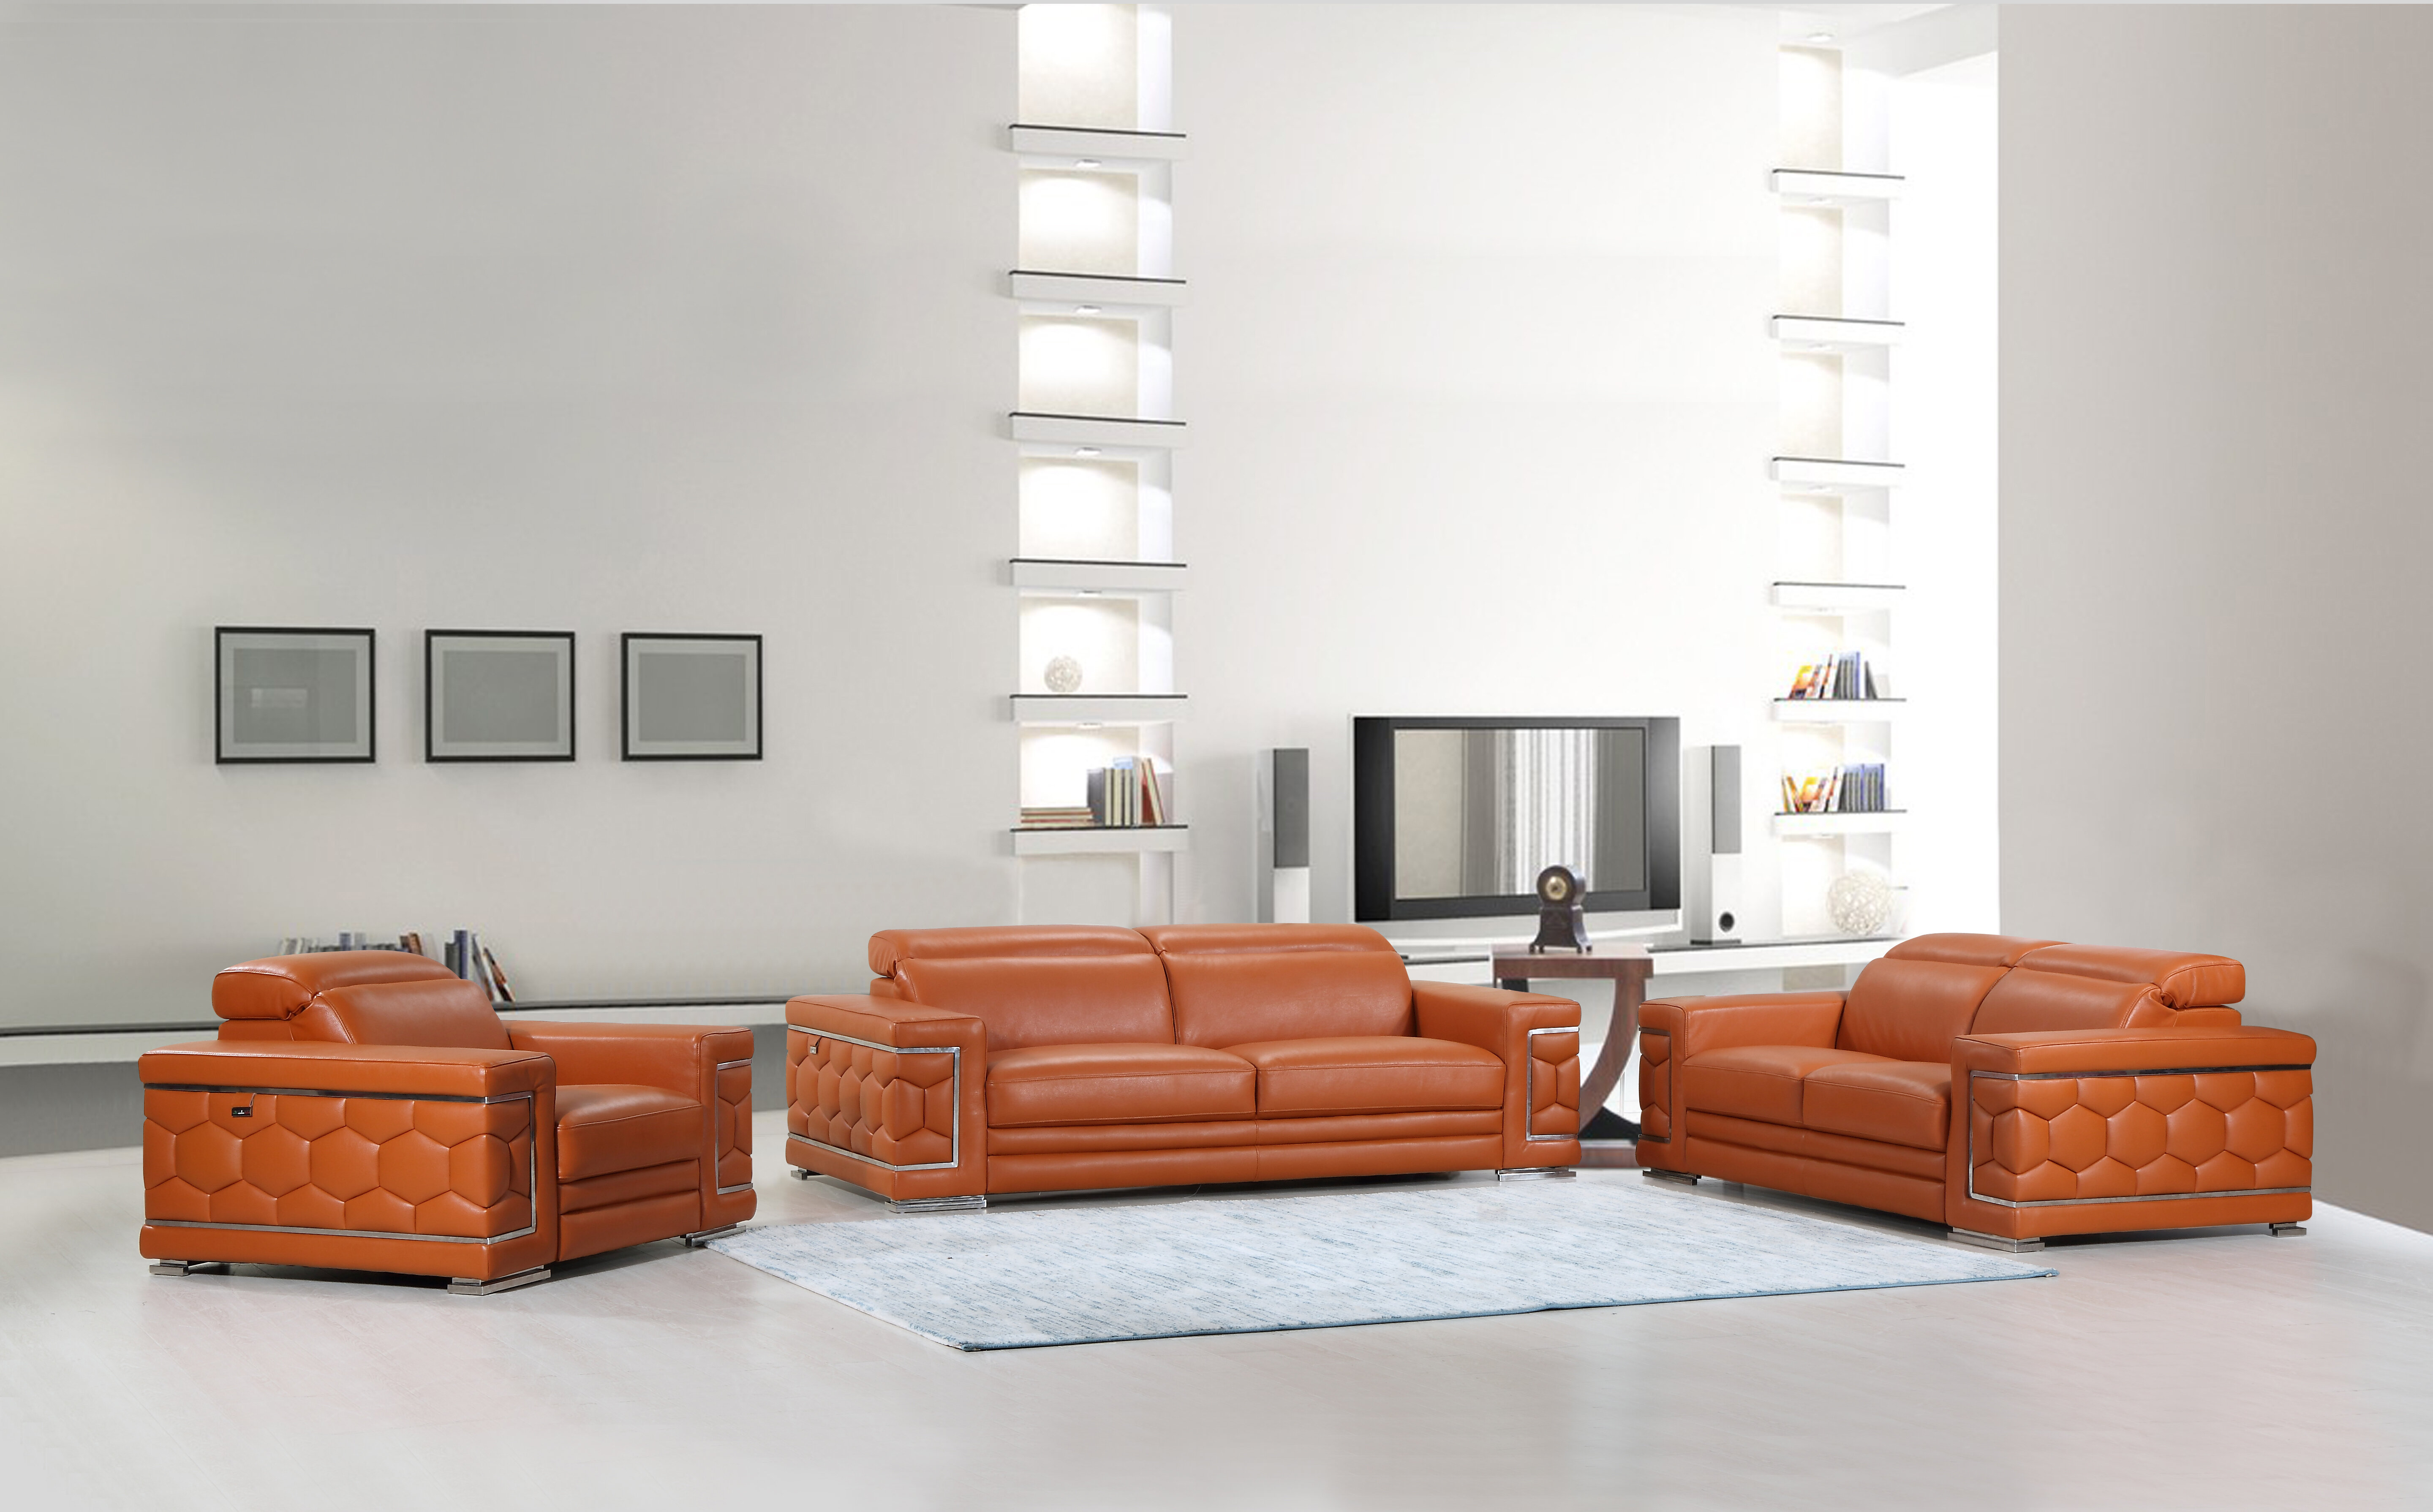 Hawkesbury Common Luxury Italian Upholstered Complete Leather 3 Piece  Living Room Set